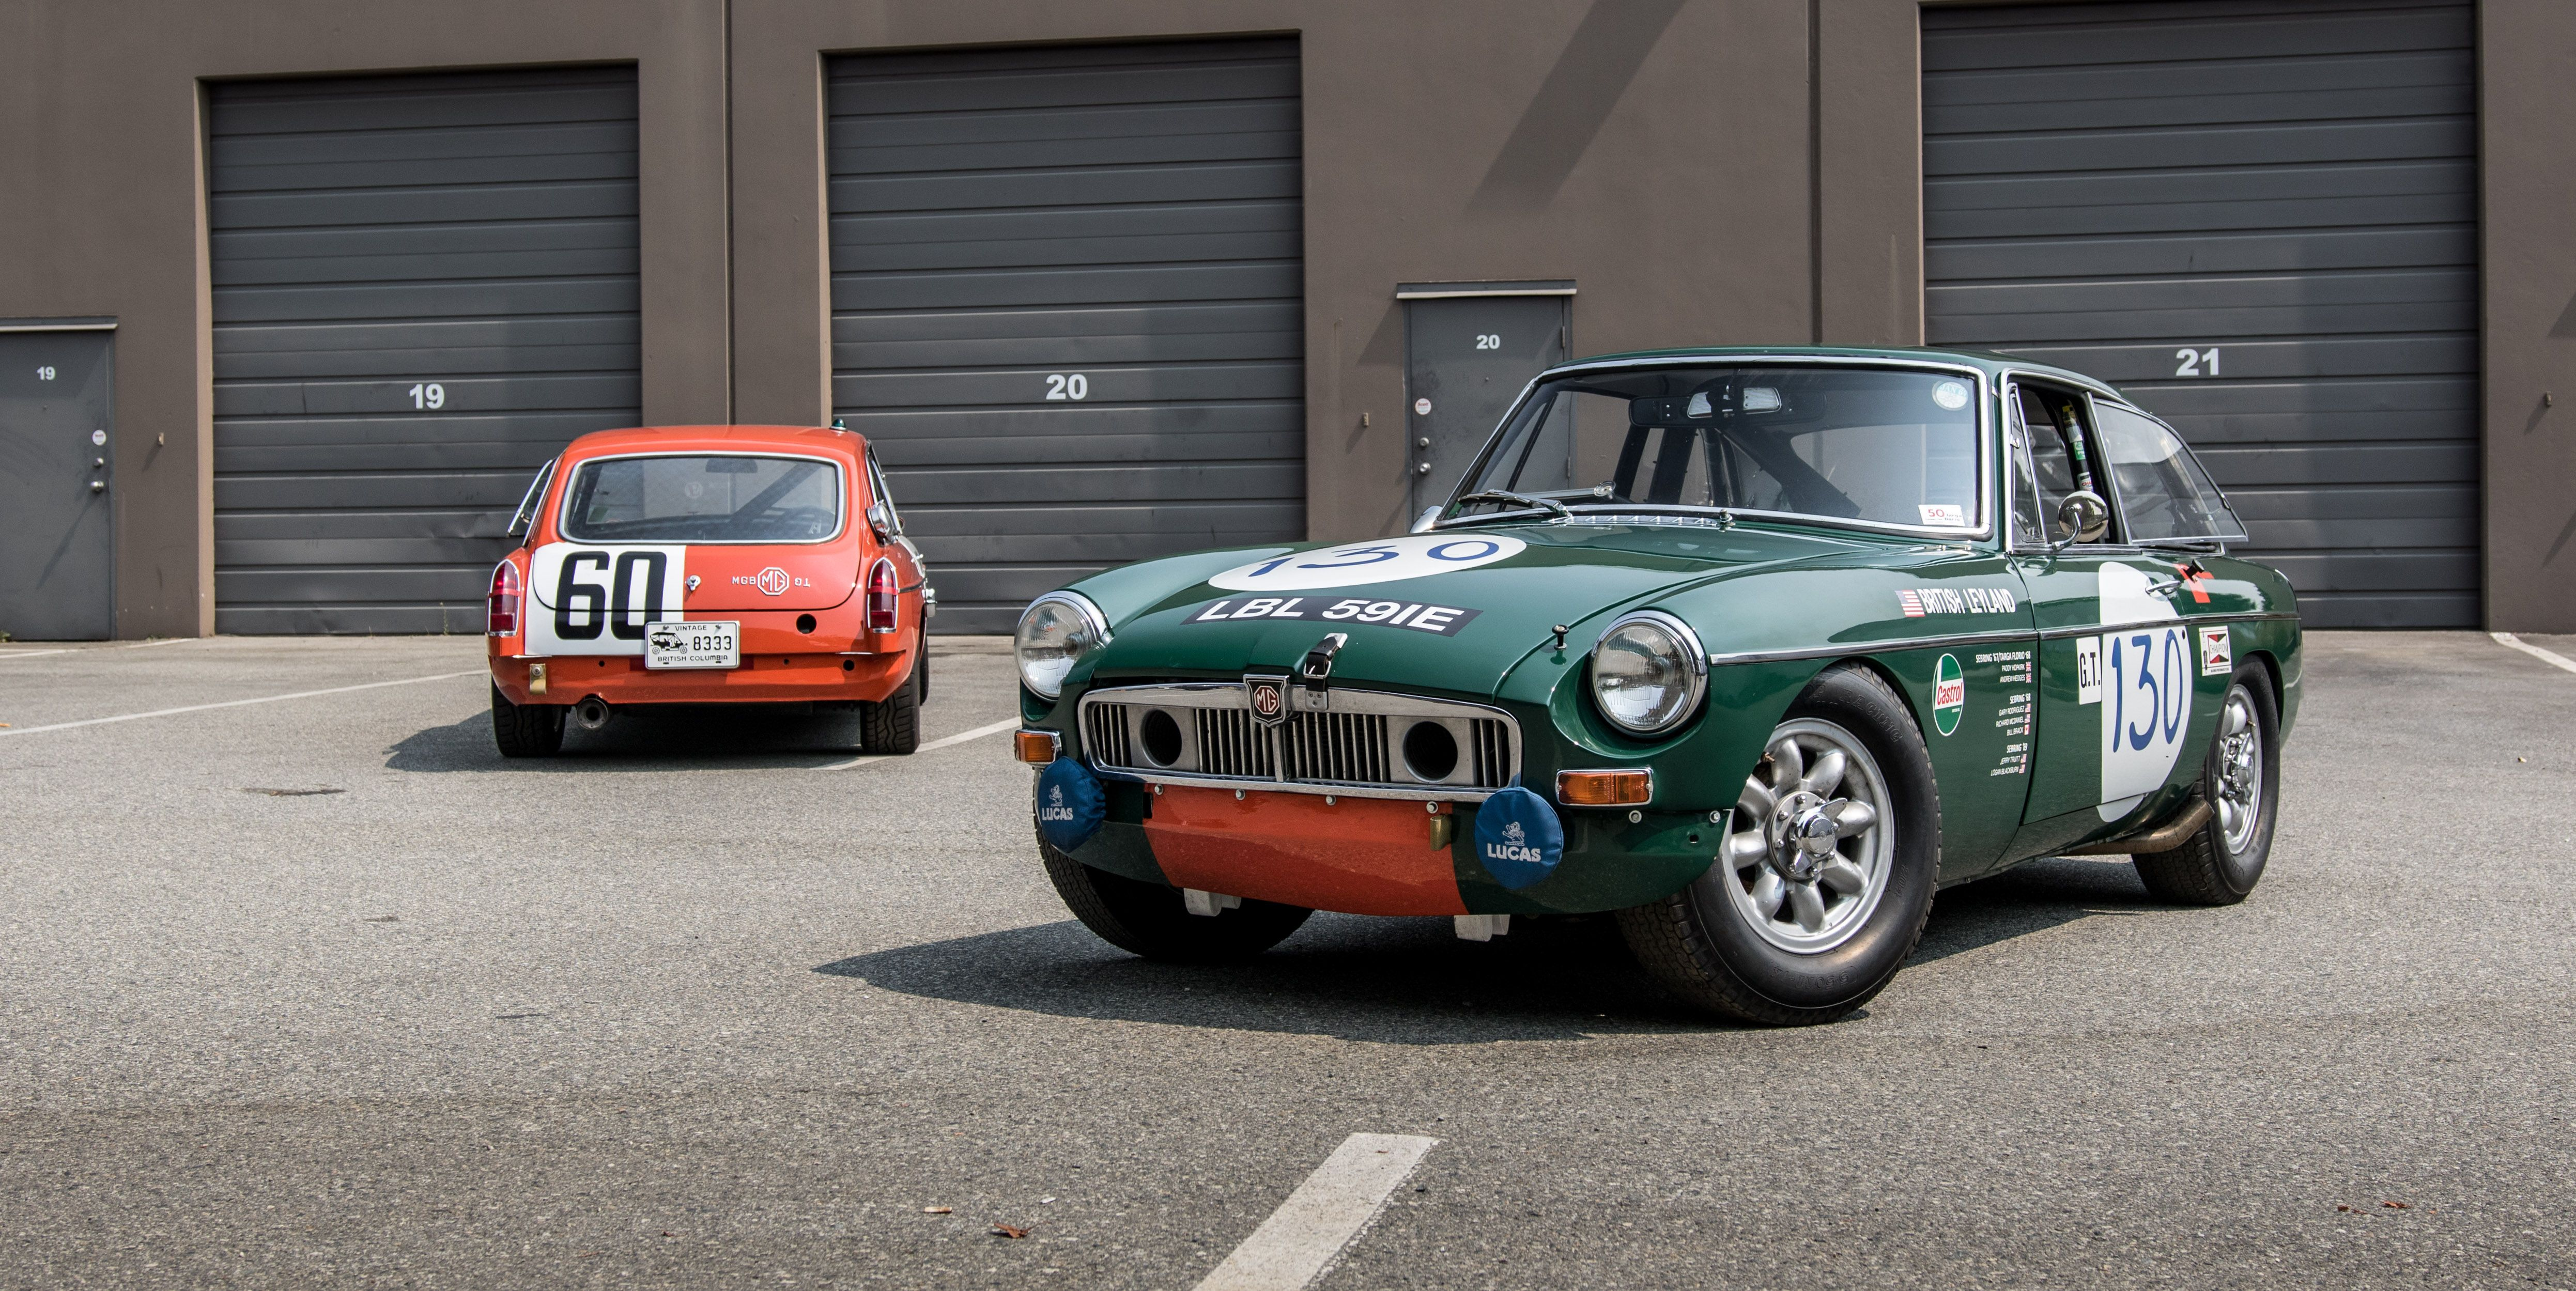 This Mgb Gt Is The Forgotten Hero Of Sports Car Racing S